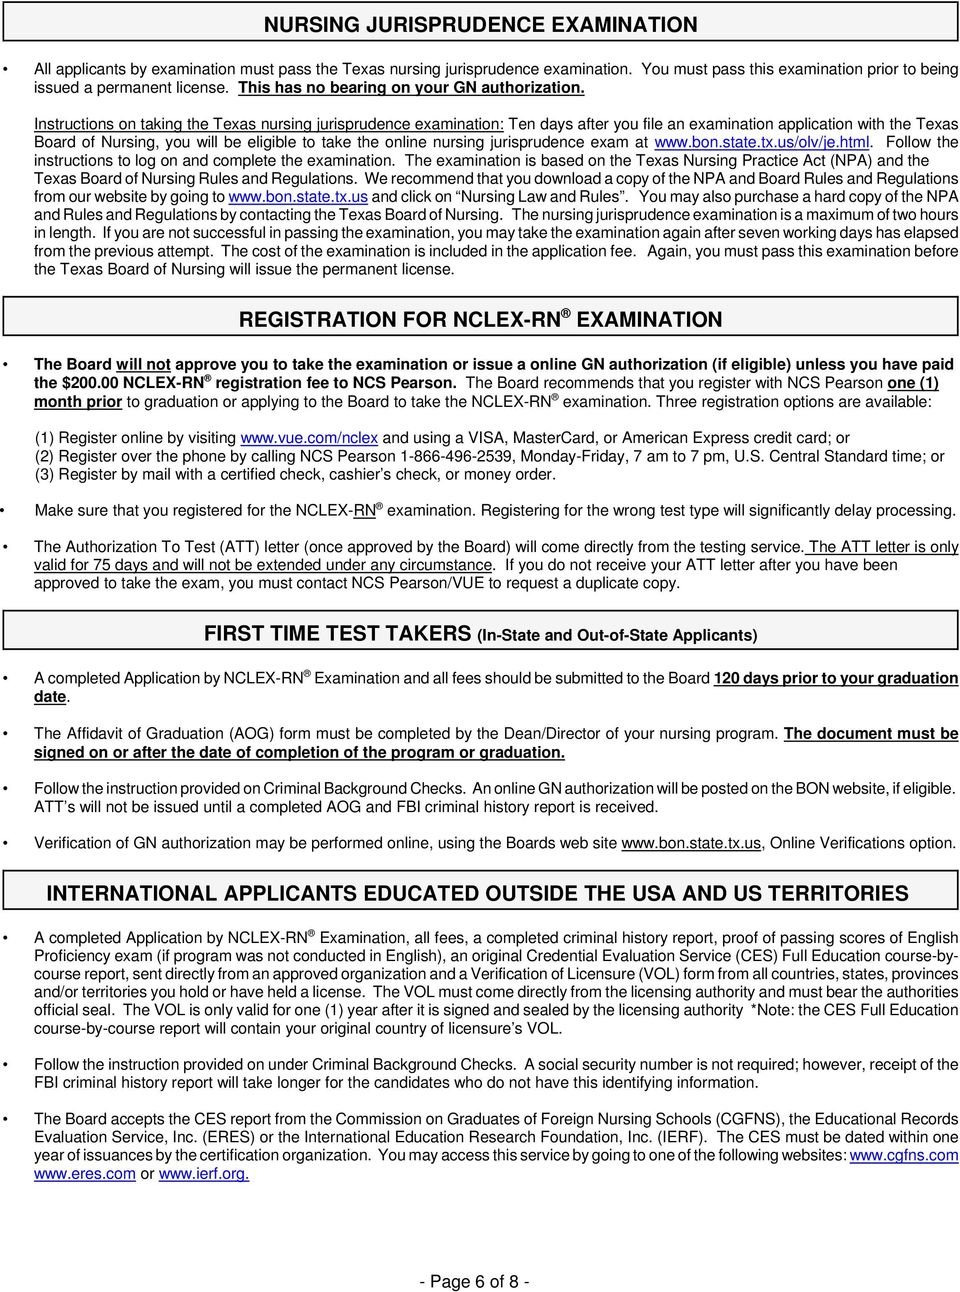 Instructions on taking the Texas nursing jurisprudence examination: Ten days after you file an examination application with the Texas Board of Nursing, you will be eligible to take the online nursing